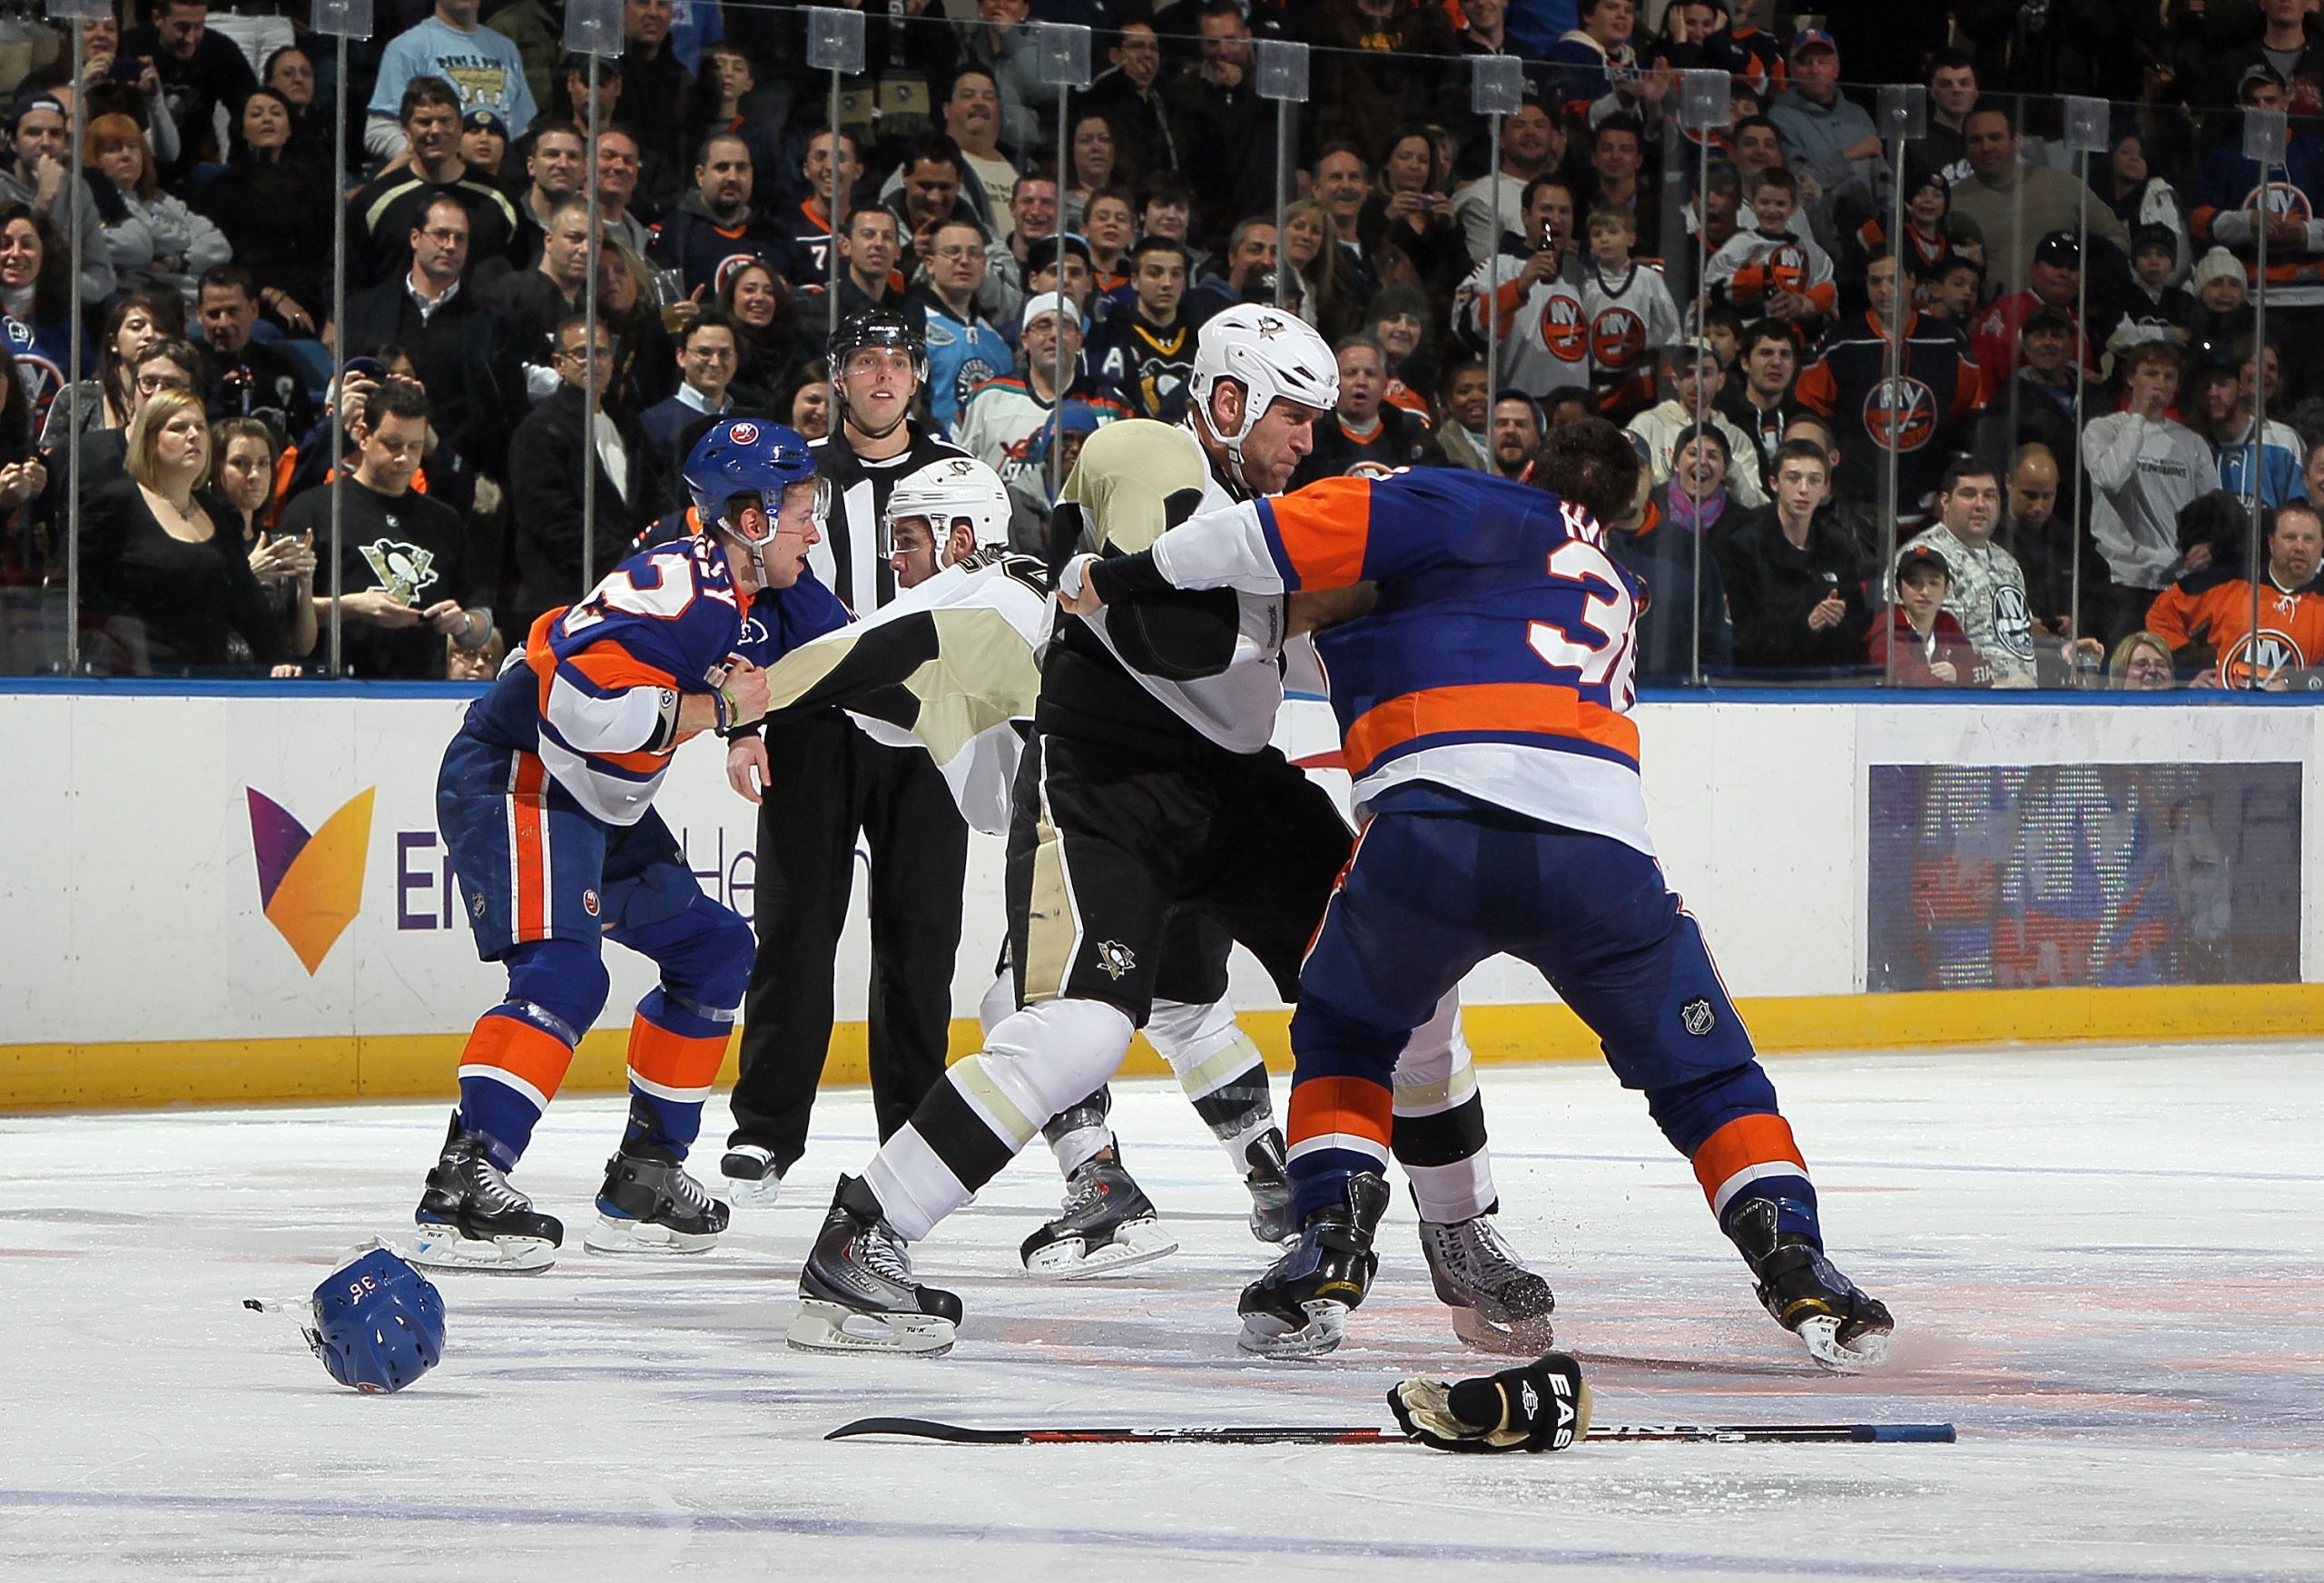 A hockey player with a crowd watching